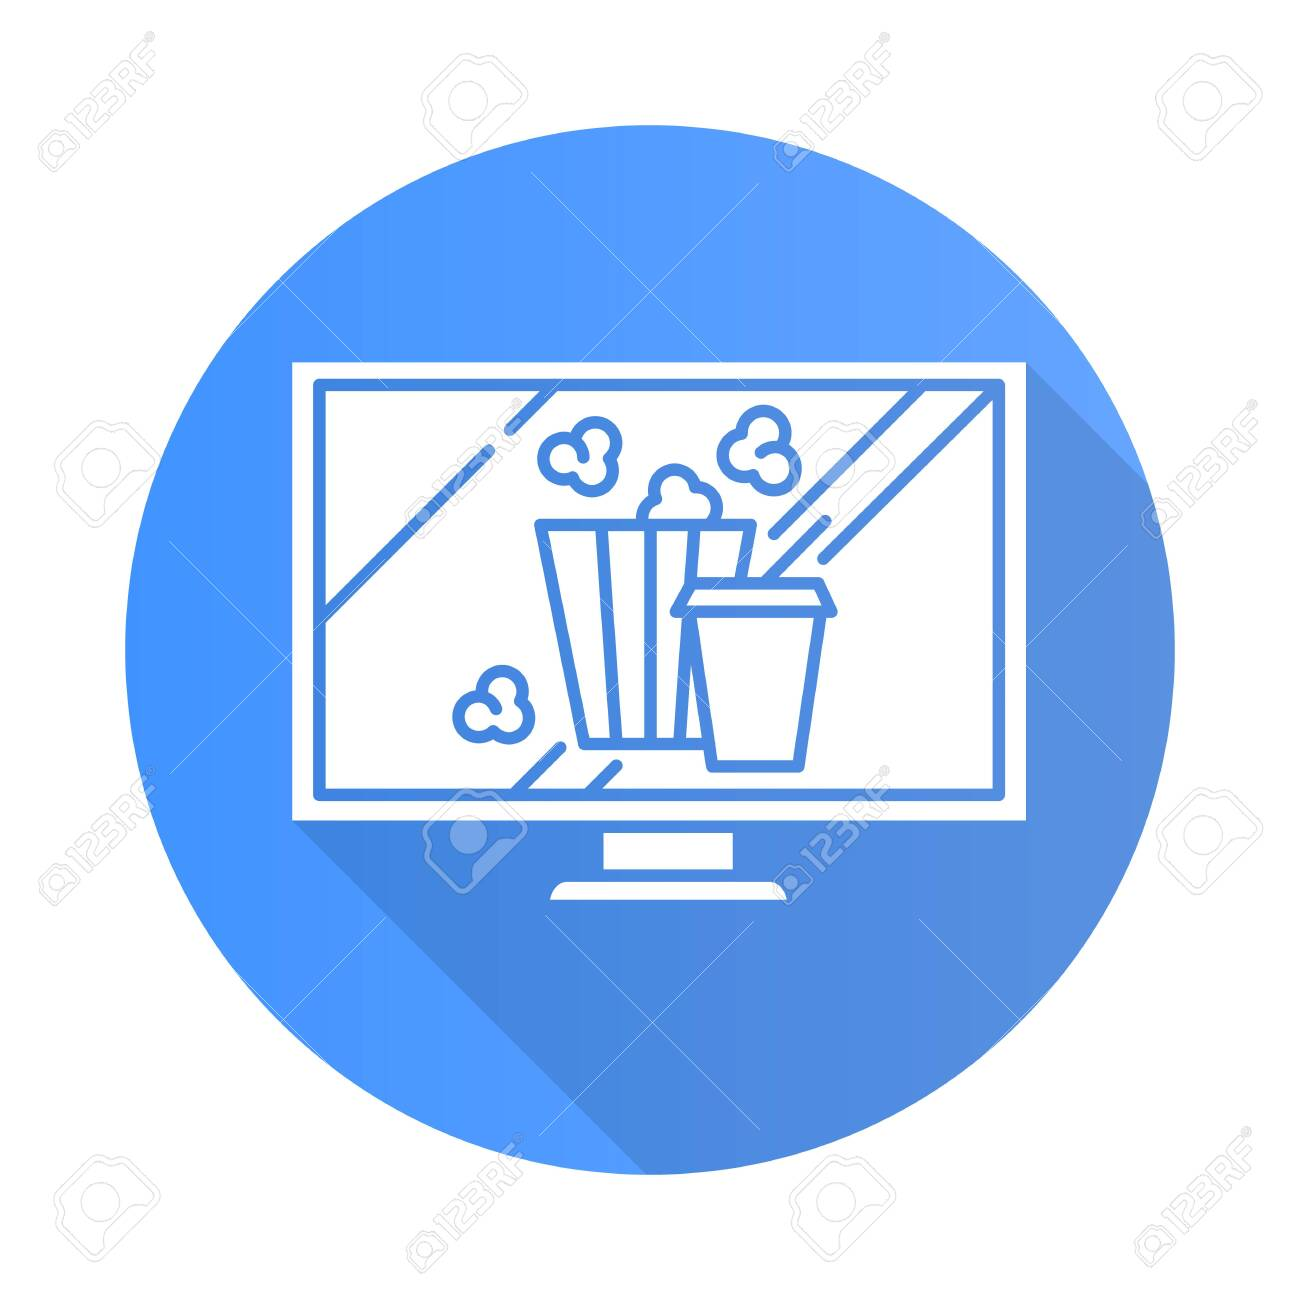 Movies and television blue flat design long shadow glyph icon. Watching films, shows. Video technology. Popcorn and drinks. E commerce department, shopping categories. Vector silhouette illustration - 135678329